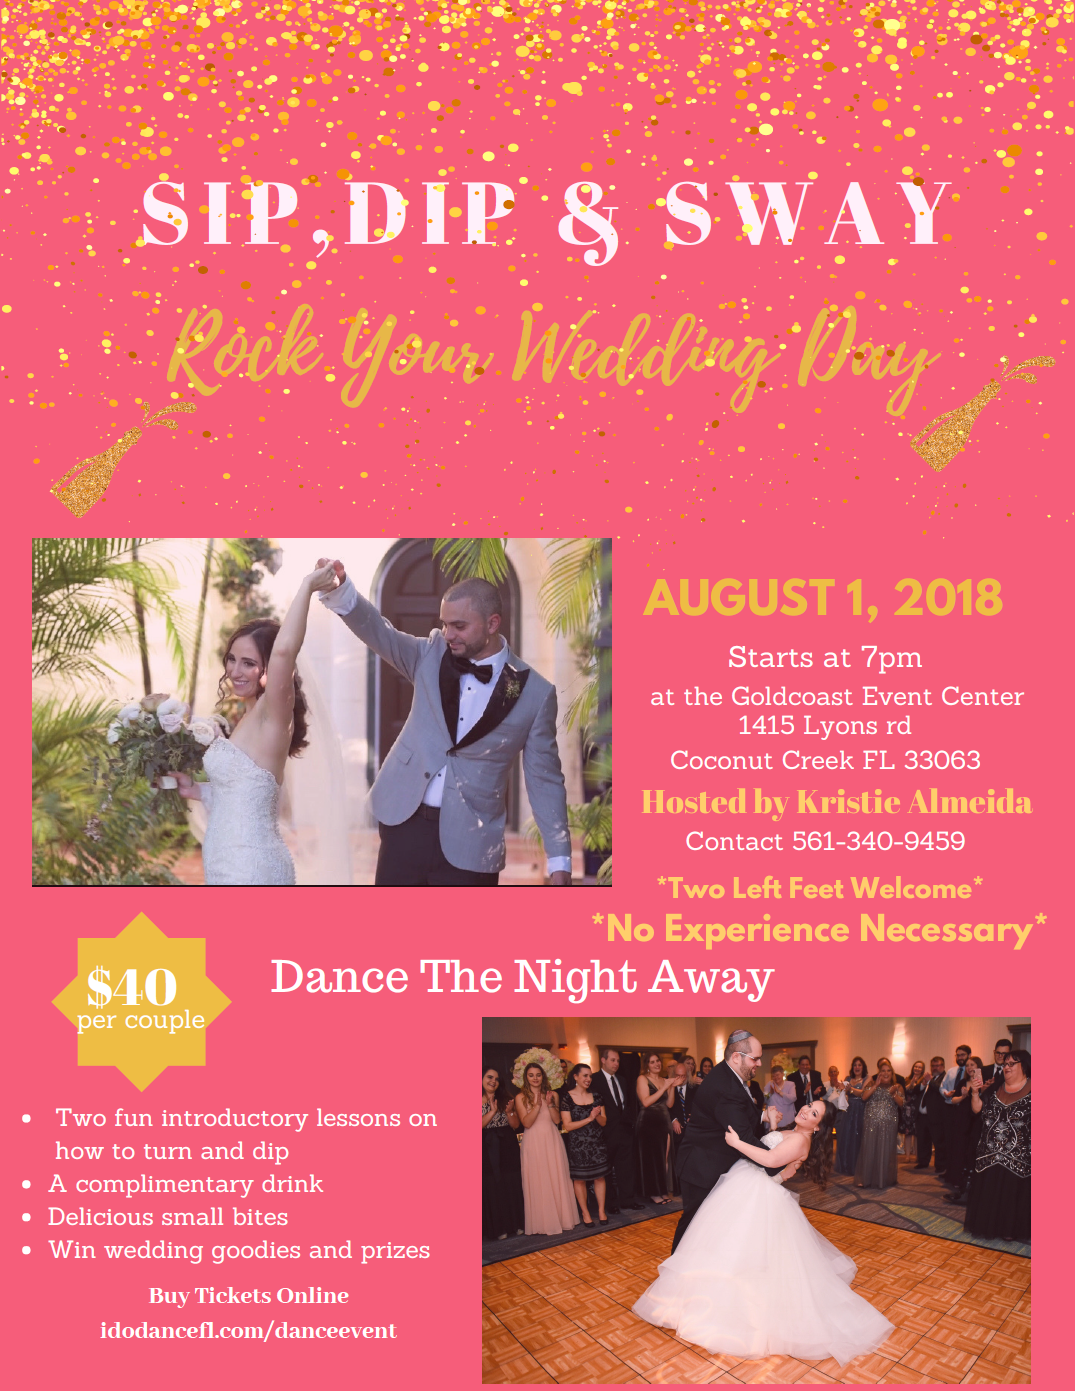 Sip, Dip & Sway - 2 Special Lessons & Reception for Wedding Couples - August 1, 2018